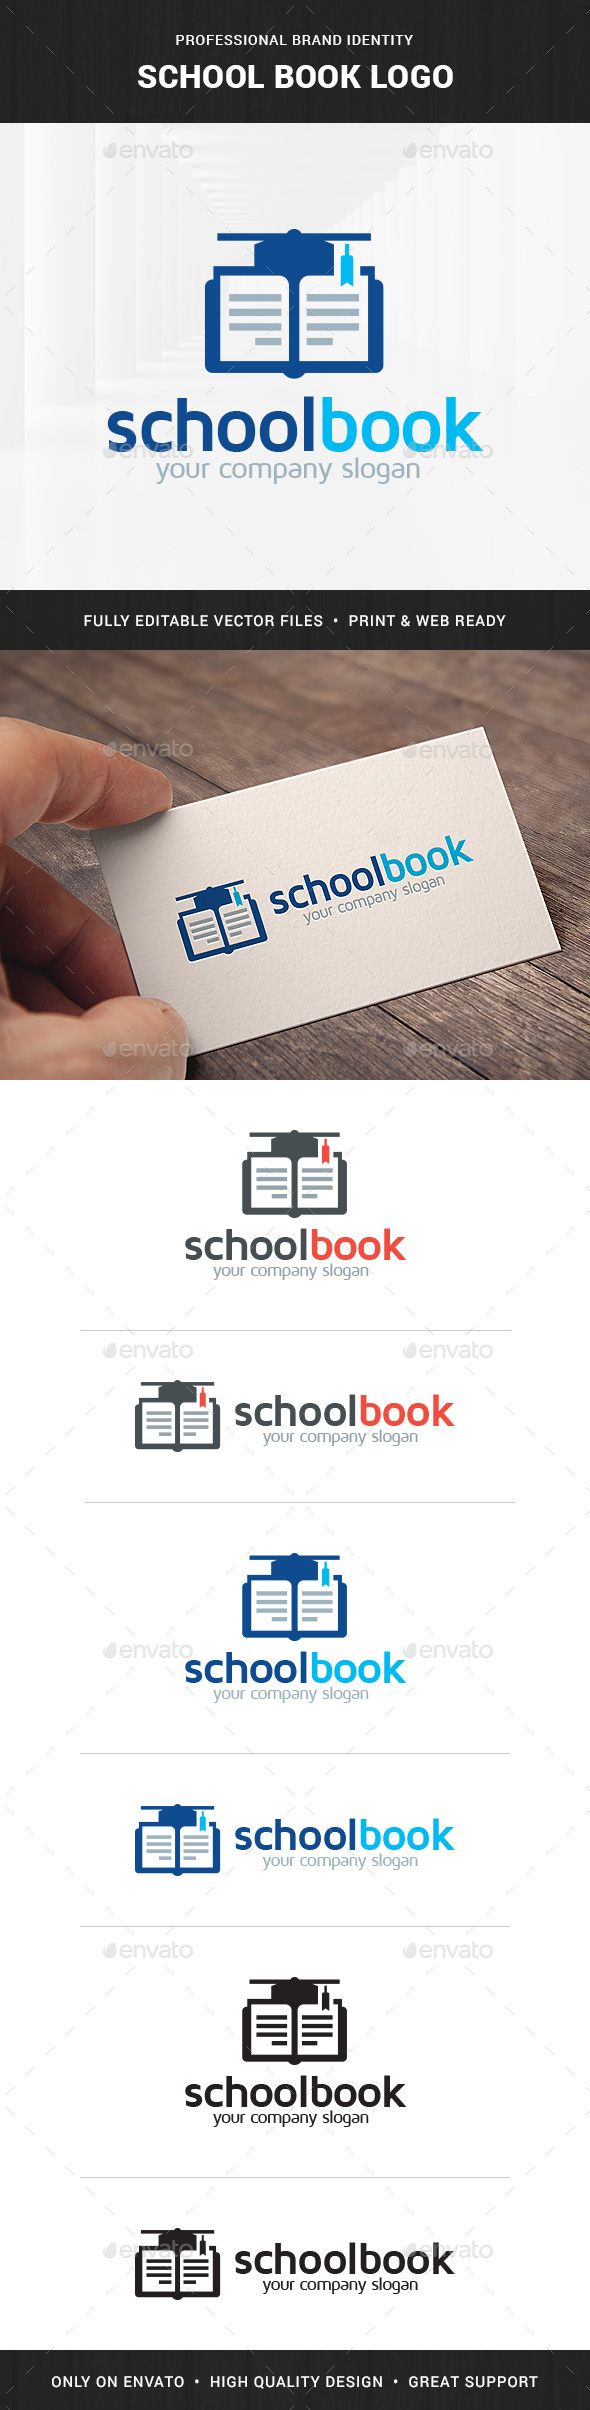 School Book Logo Template - Objects Logo Templates